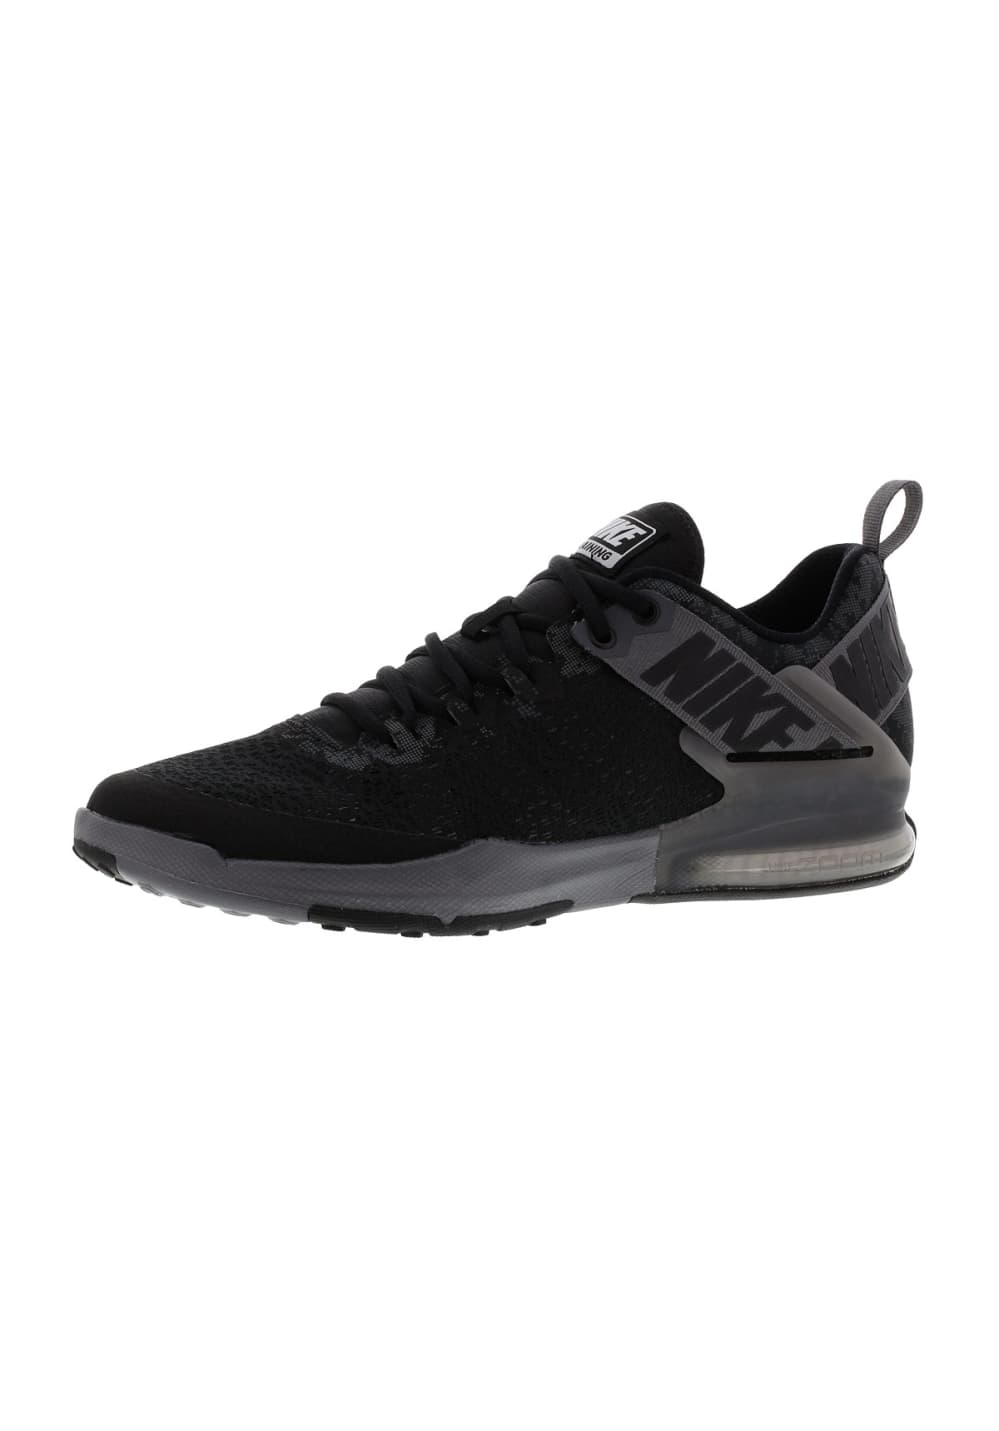 f894c76167a2 Next. This product is currently out of stock. Nike. Zoom Domination Tr 2 -  Fitness shoes for Men